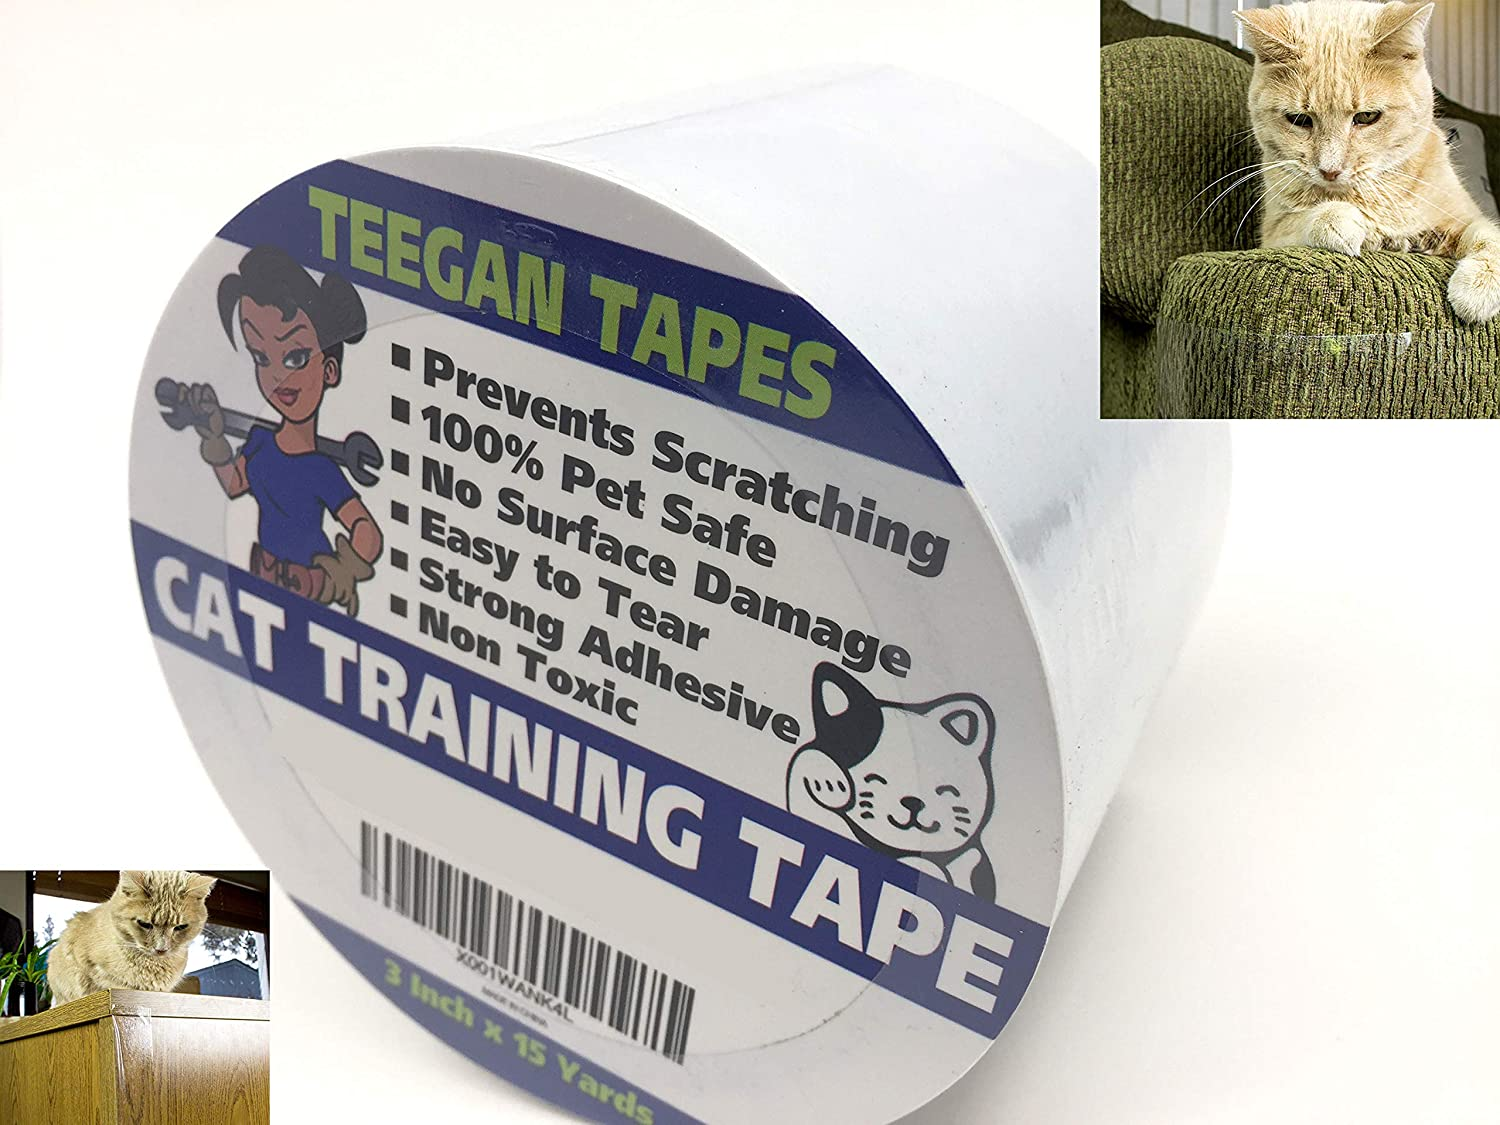 Cat Training Tape - Prevent Scratching | Clear Double Sided Tape | Furniture Protector & Scratch Deterrent | Sticky Double Sided Pet Repellant | Safe for Wood Furniture, Leather Sofas & Couches